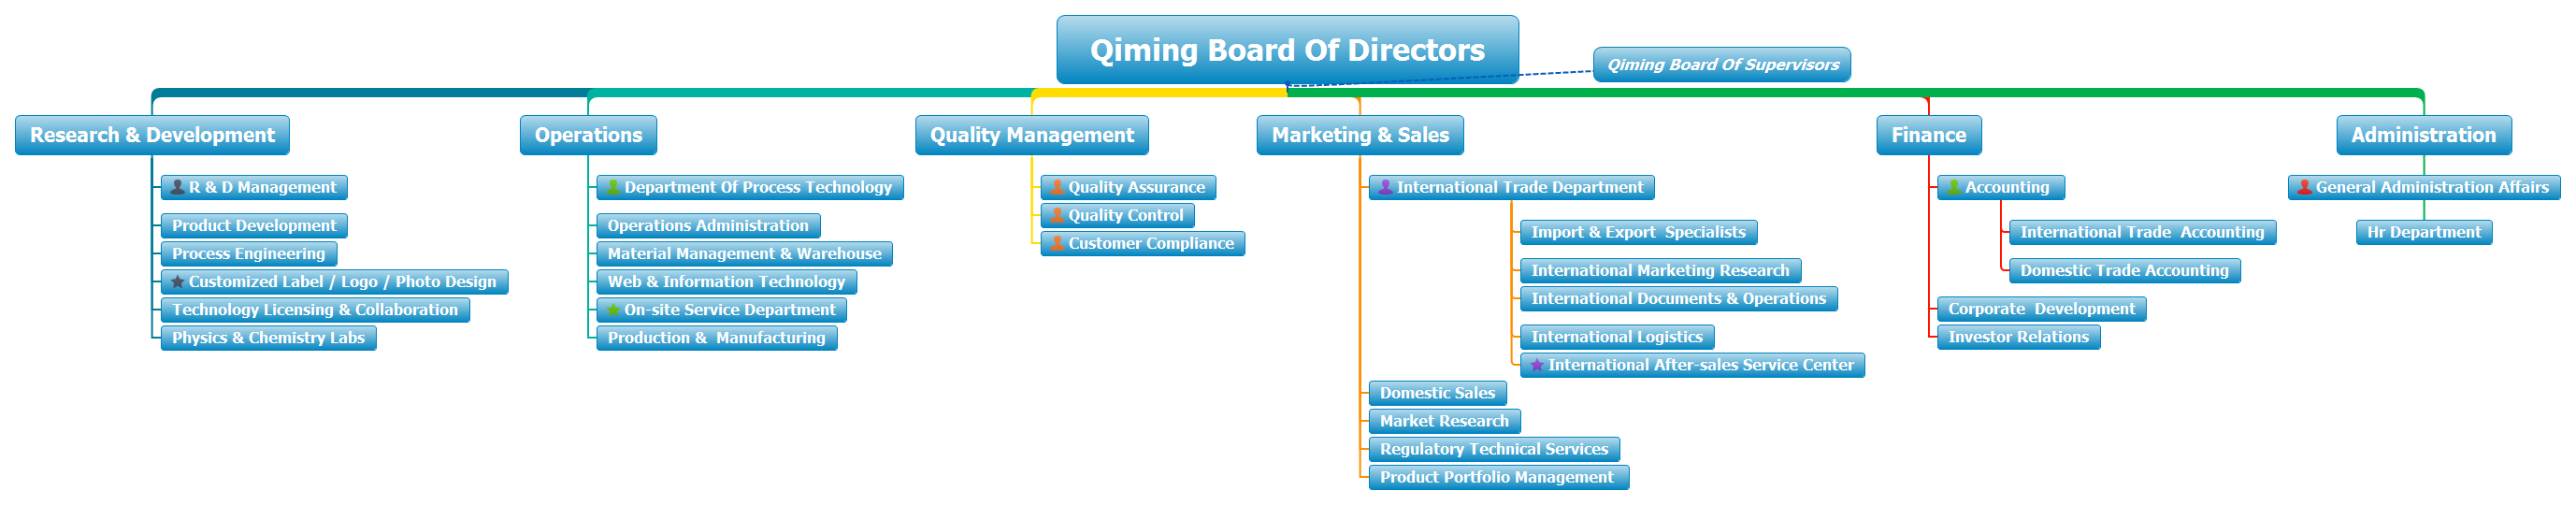 Qiming Packaging organization chart